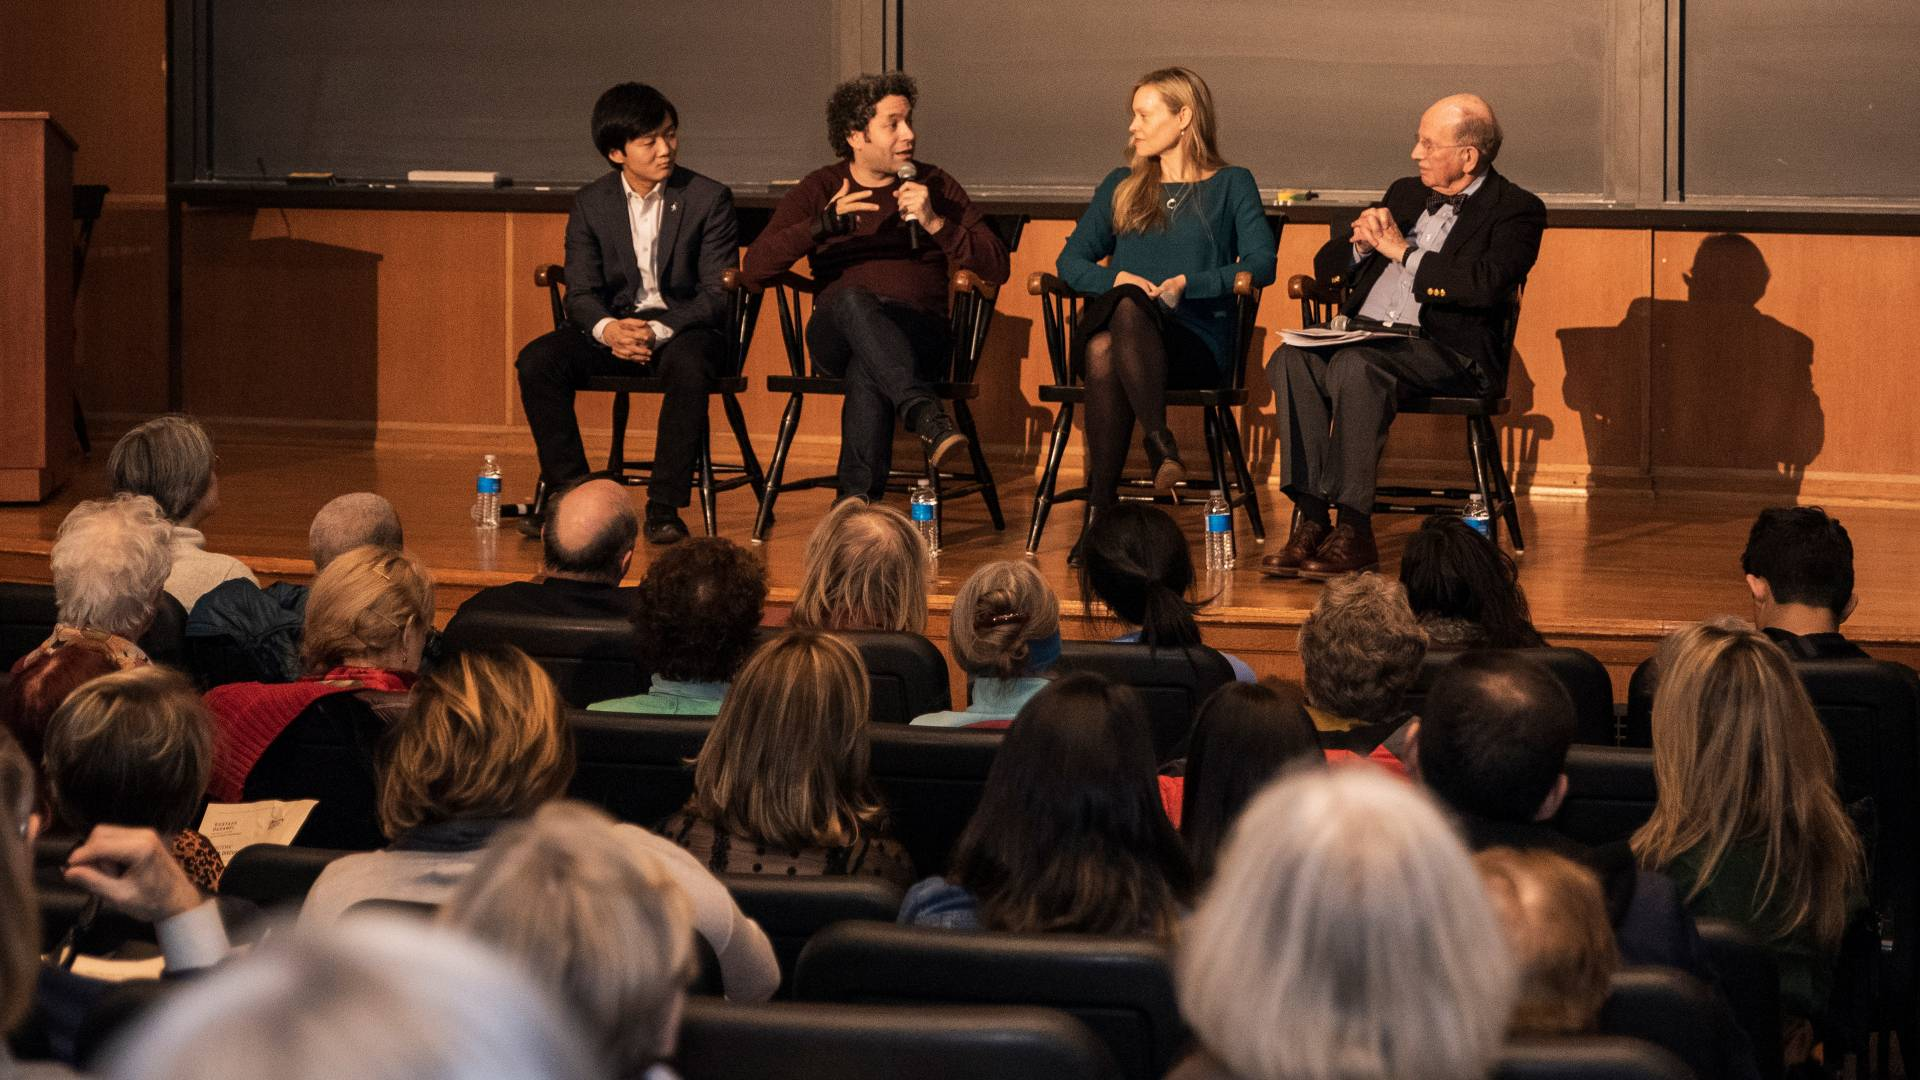 Lou Chen, Gustavo Dudamel, Anne Fitzgibbon, Stanley Katz sitting on stage during panel session